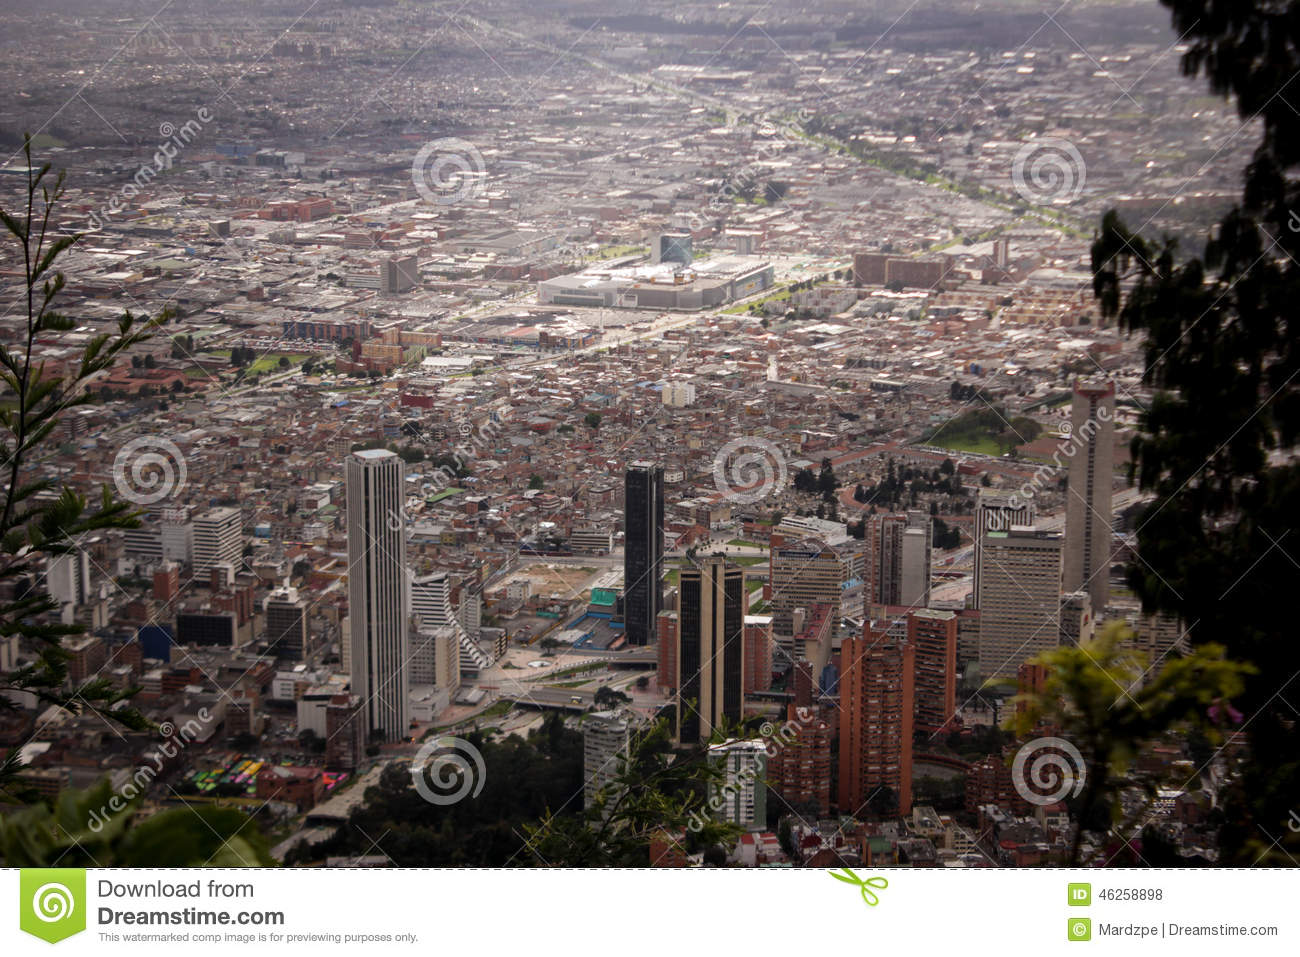 Landscape of the buildings of the downtown in Bogota, Colombia